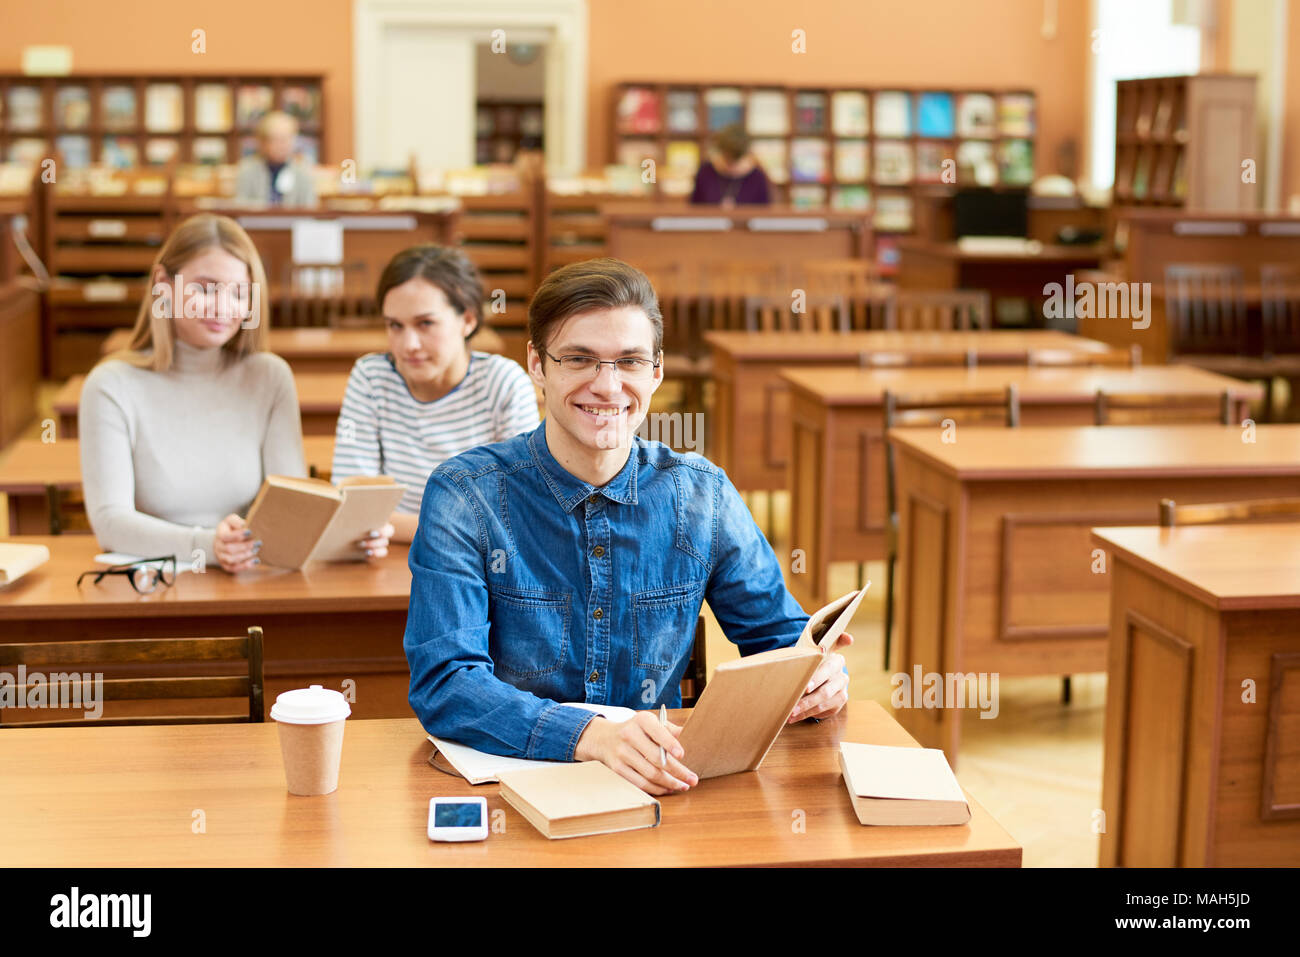 Excited diligent student in library - Stock Image